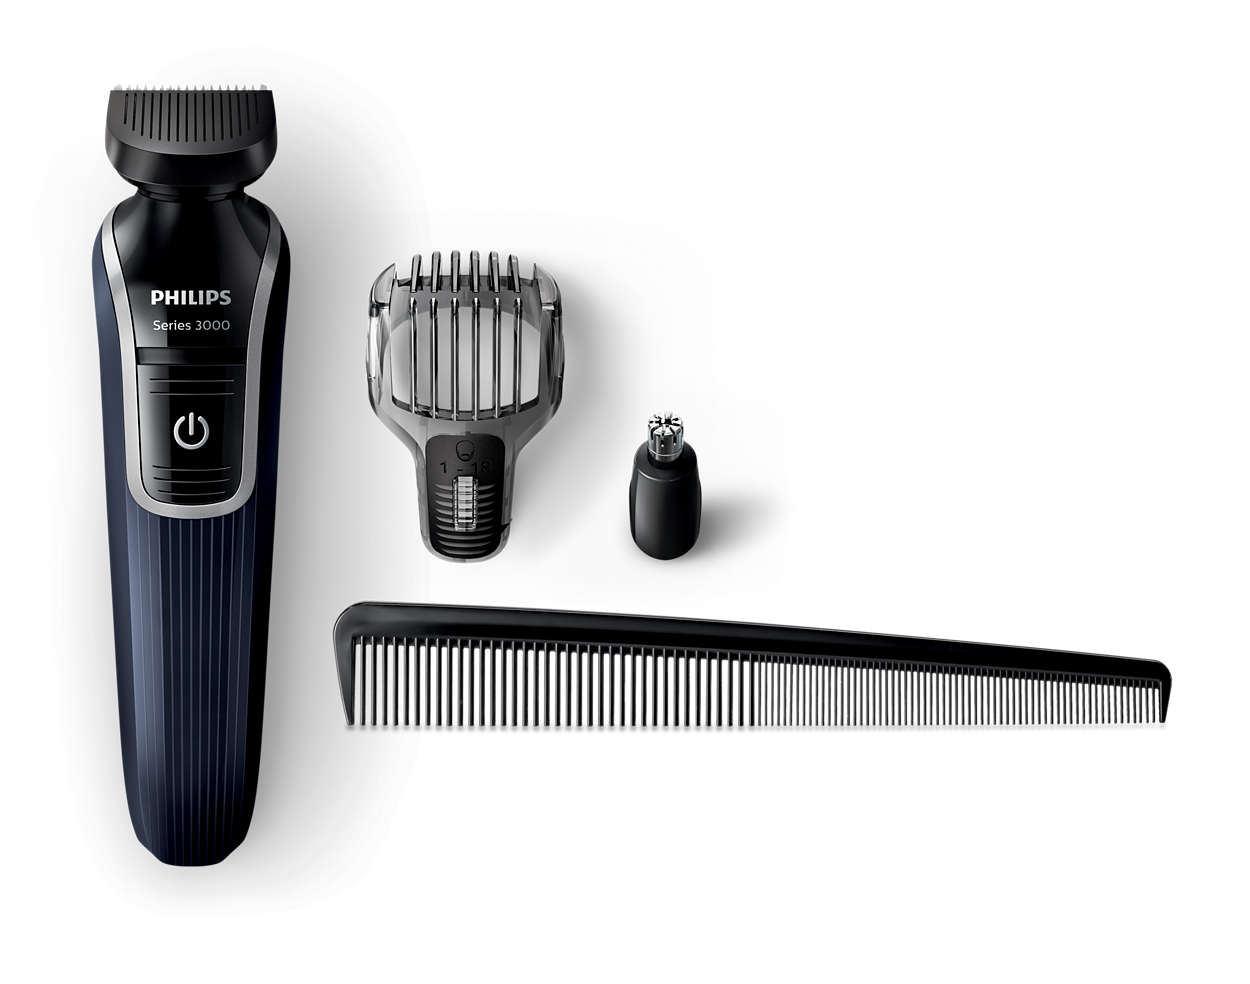 multigroom series 3000 3 in 1 beard and detail trimmer qg3322 13 philips. Black Bedroom Furniture Sets. Home Design Ideas